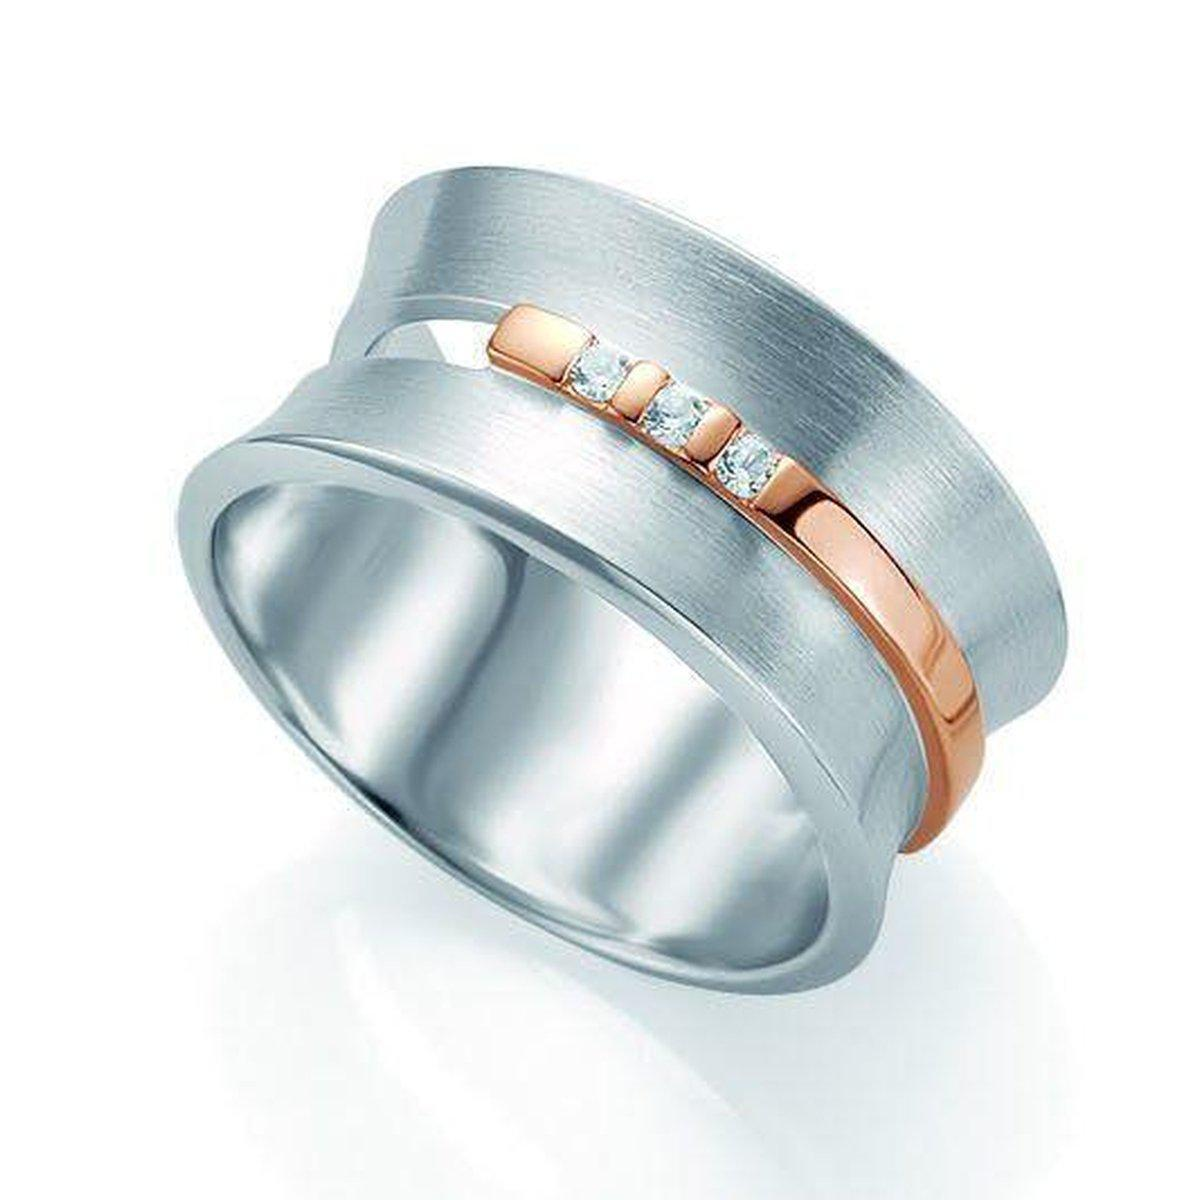 Rose Gold & Rhodium Plated Sterling Silver White Sapphire Ring - 42/03180-Breuning-Renee Taylor Gallery